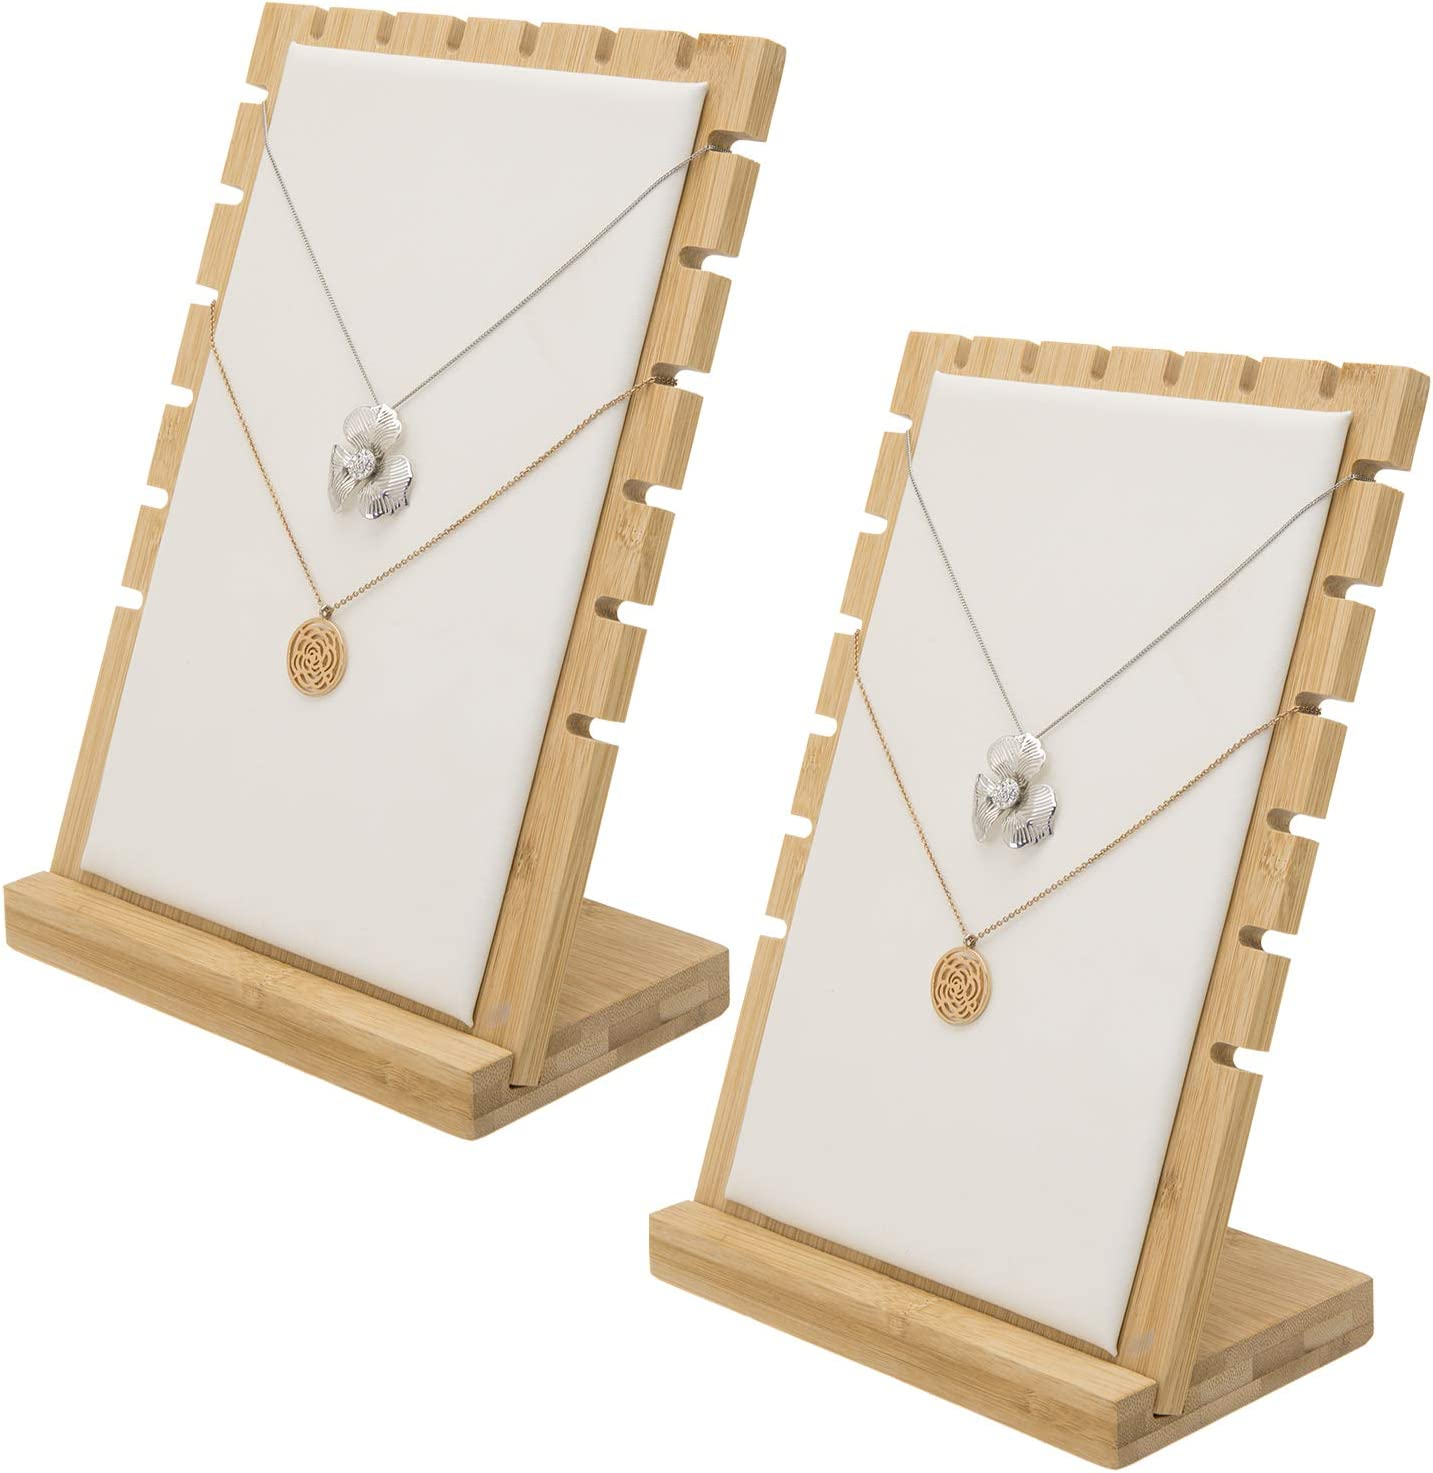 MyGift Bamboo & White Panel Jewelry/Necklace Tabletop Display Boards, Set of 2